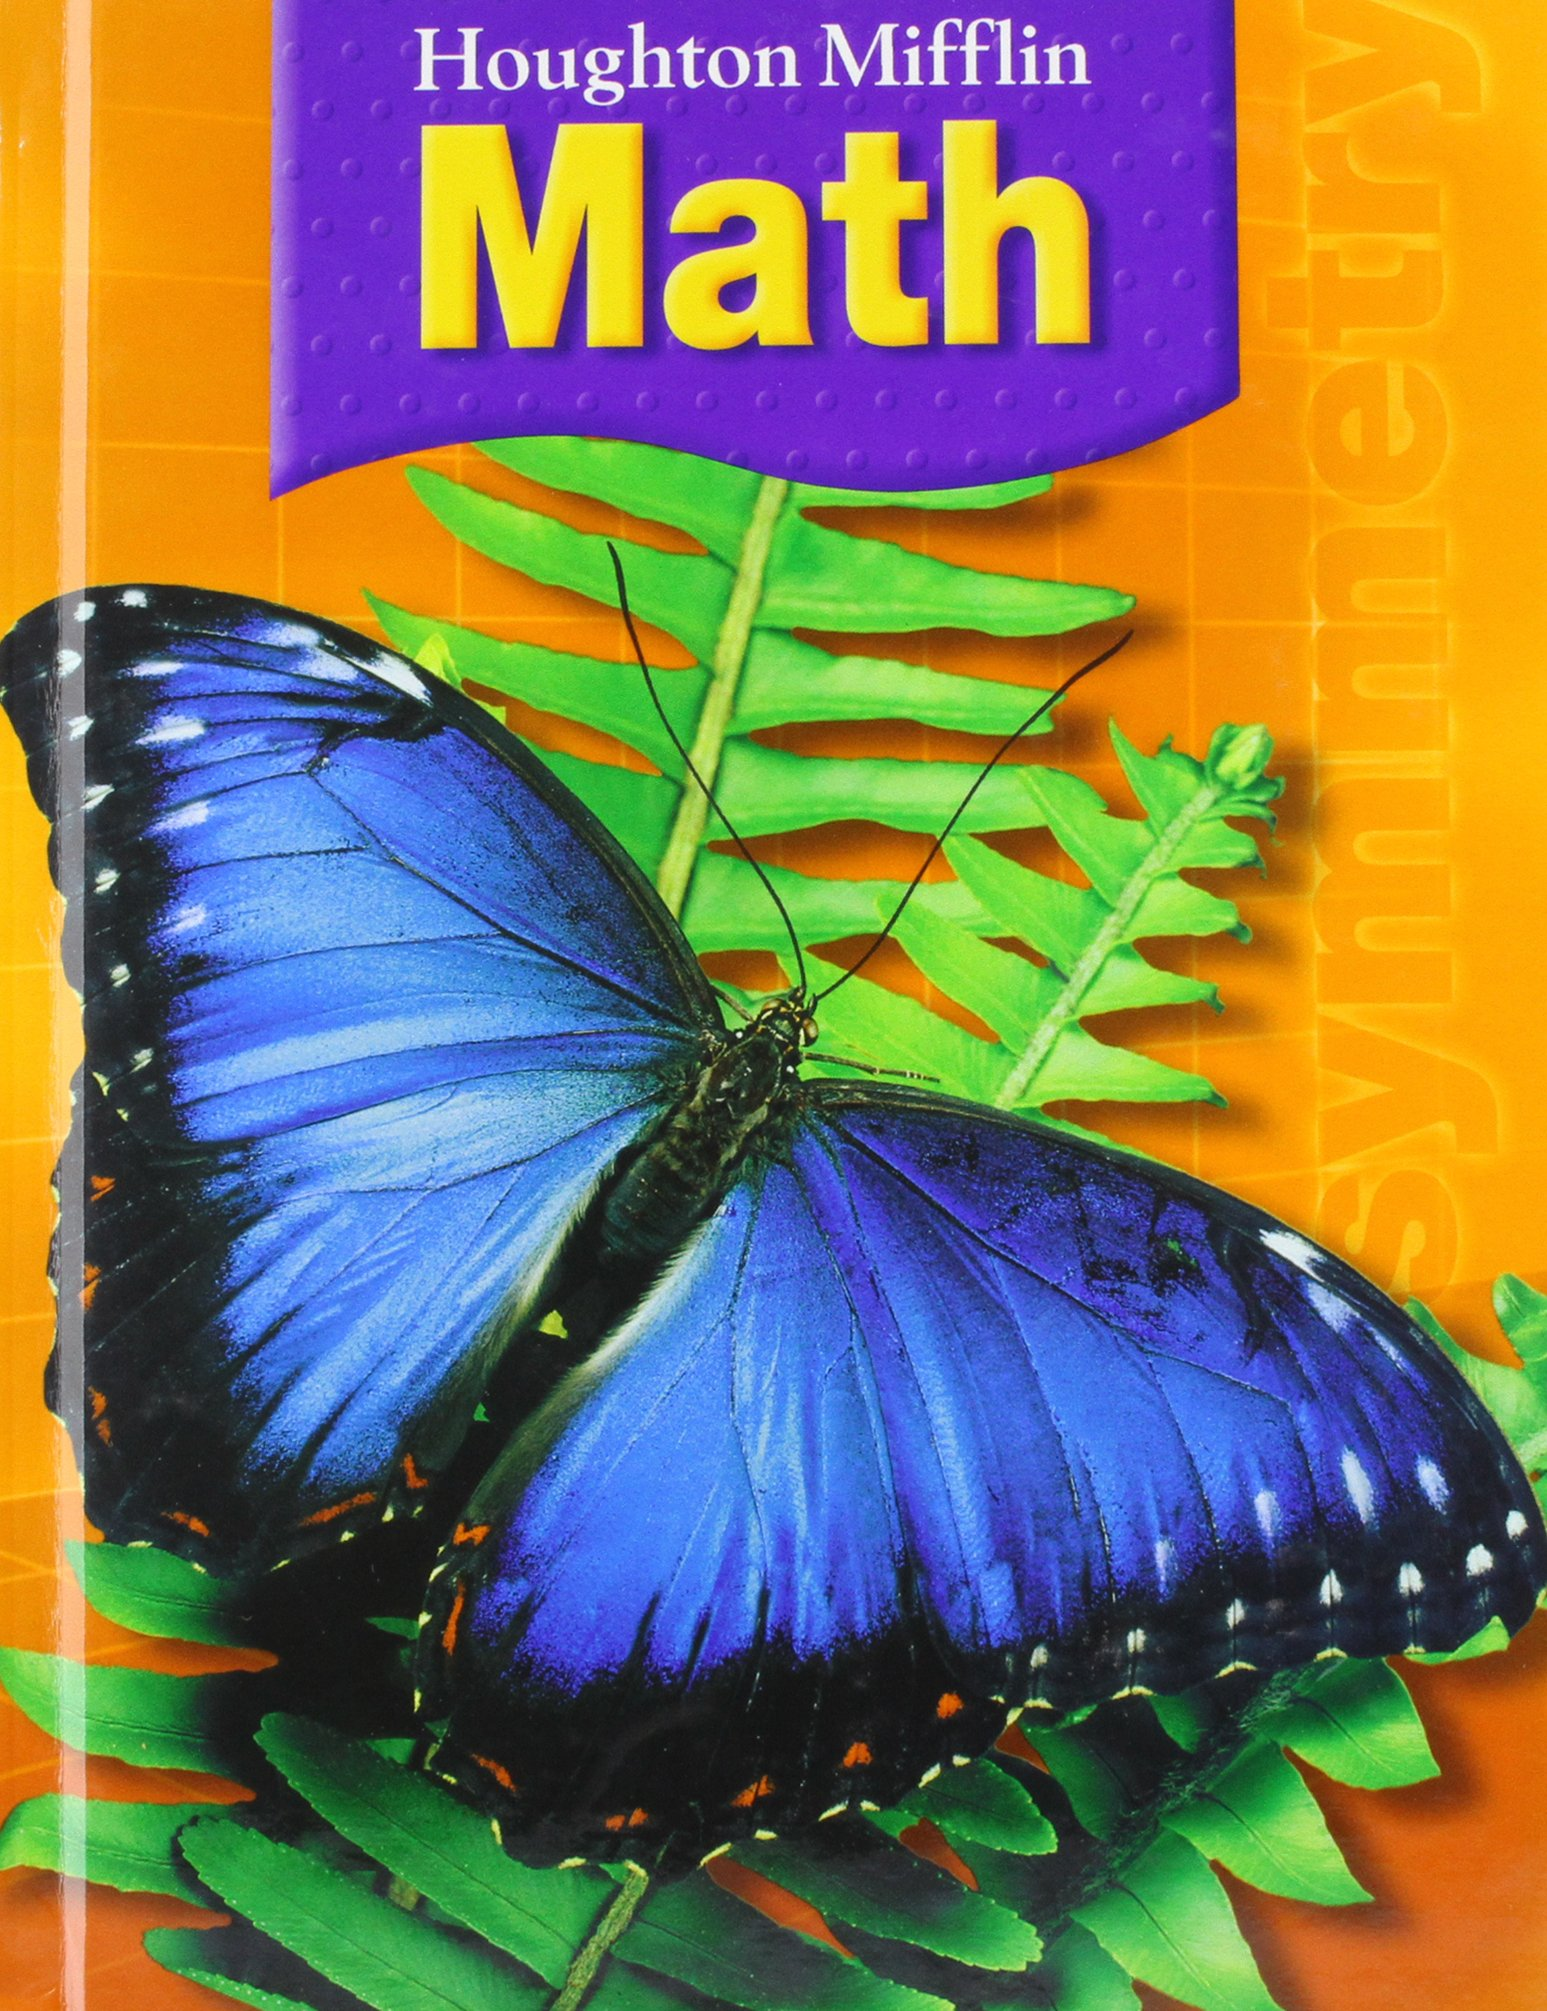 Worksheets Houghton Mifflin Harcourt Math Worksheets Houghton Mifflin Math: Student Book Grade 3 2007: HOUGHTON MIFF